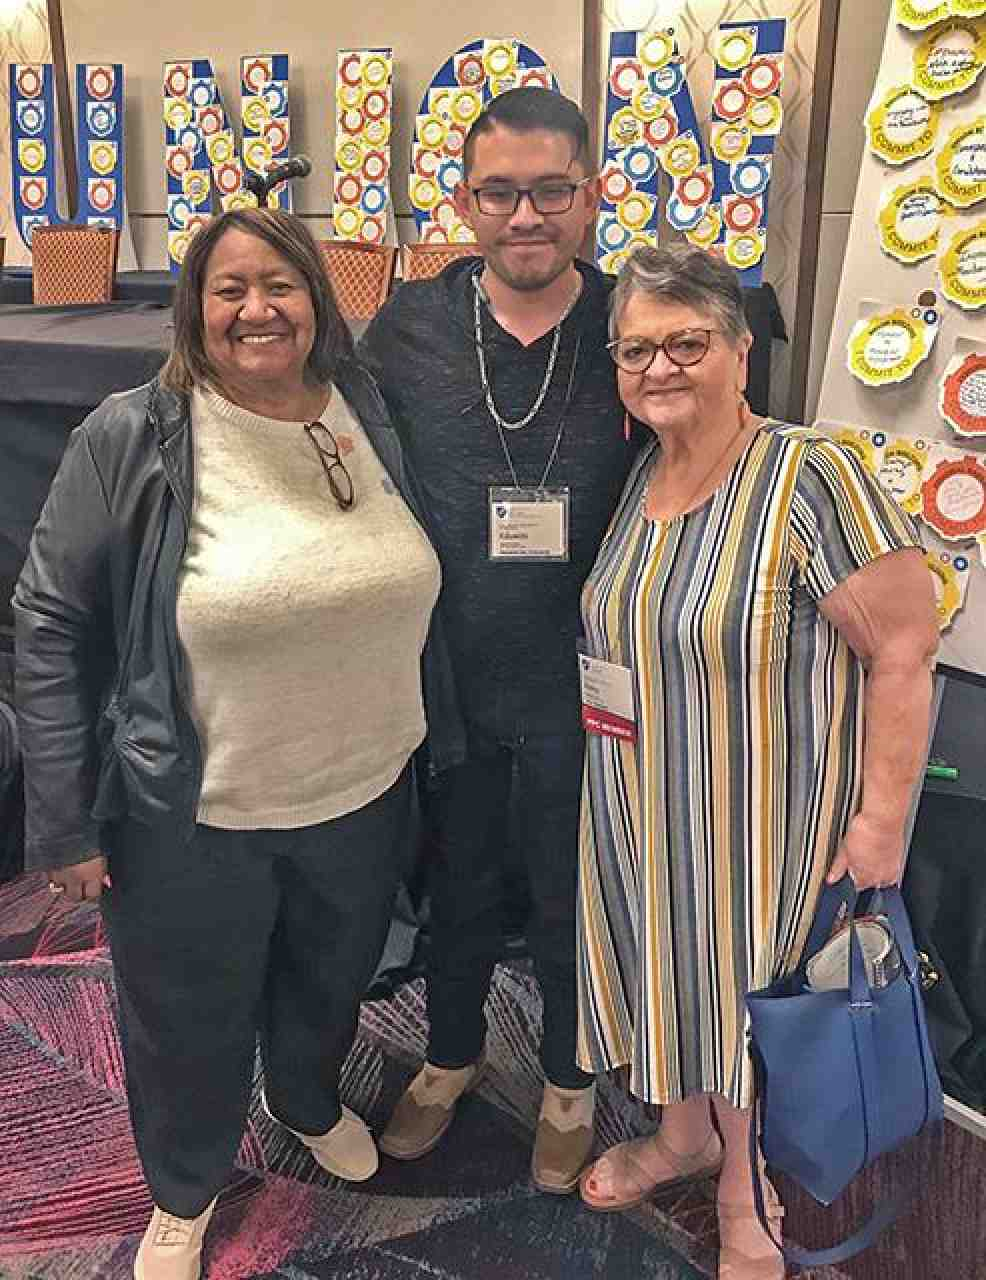 Eddie Quezada with AFT Secretary-Treasurer Lorretta Johnson, left, and AFT Vice President Kathy Chavez of AFT New Mexico.